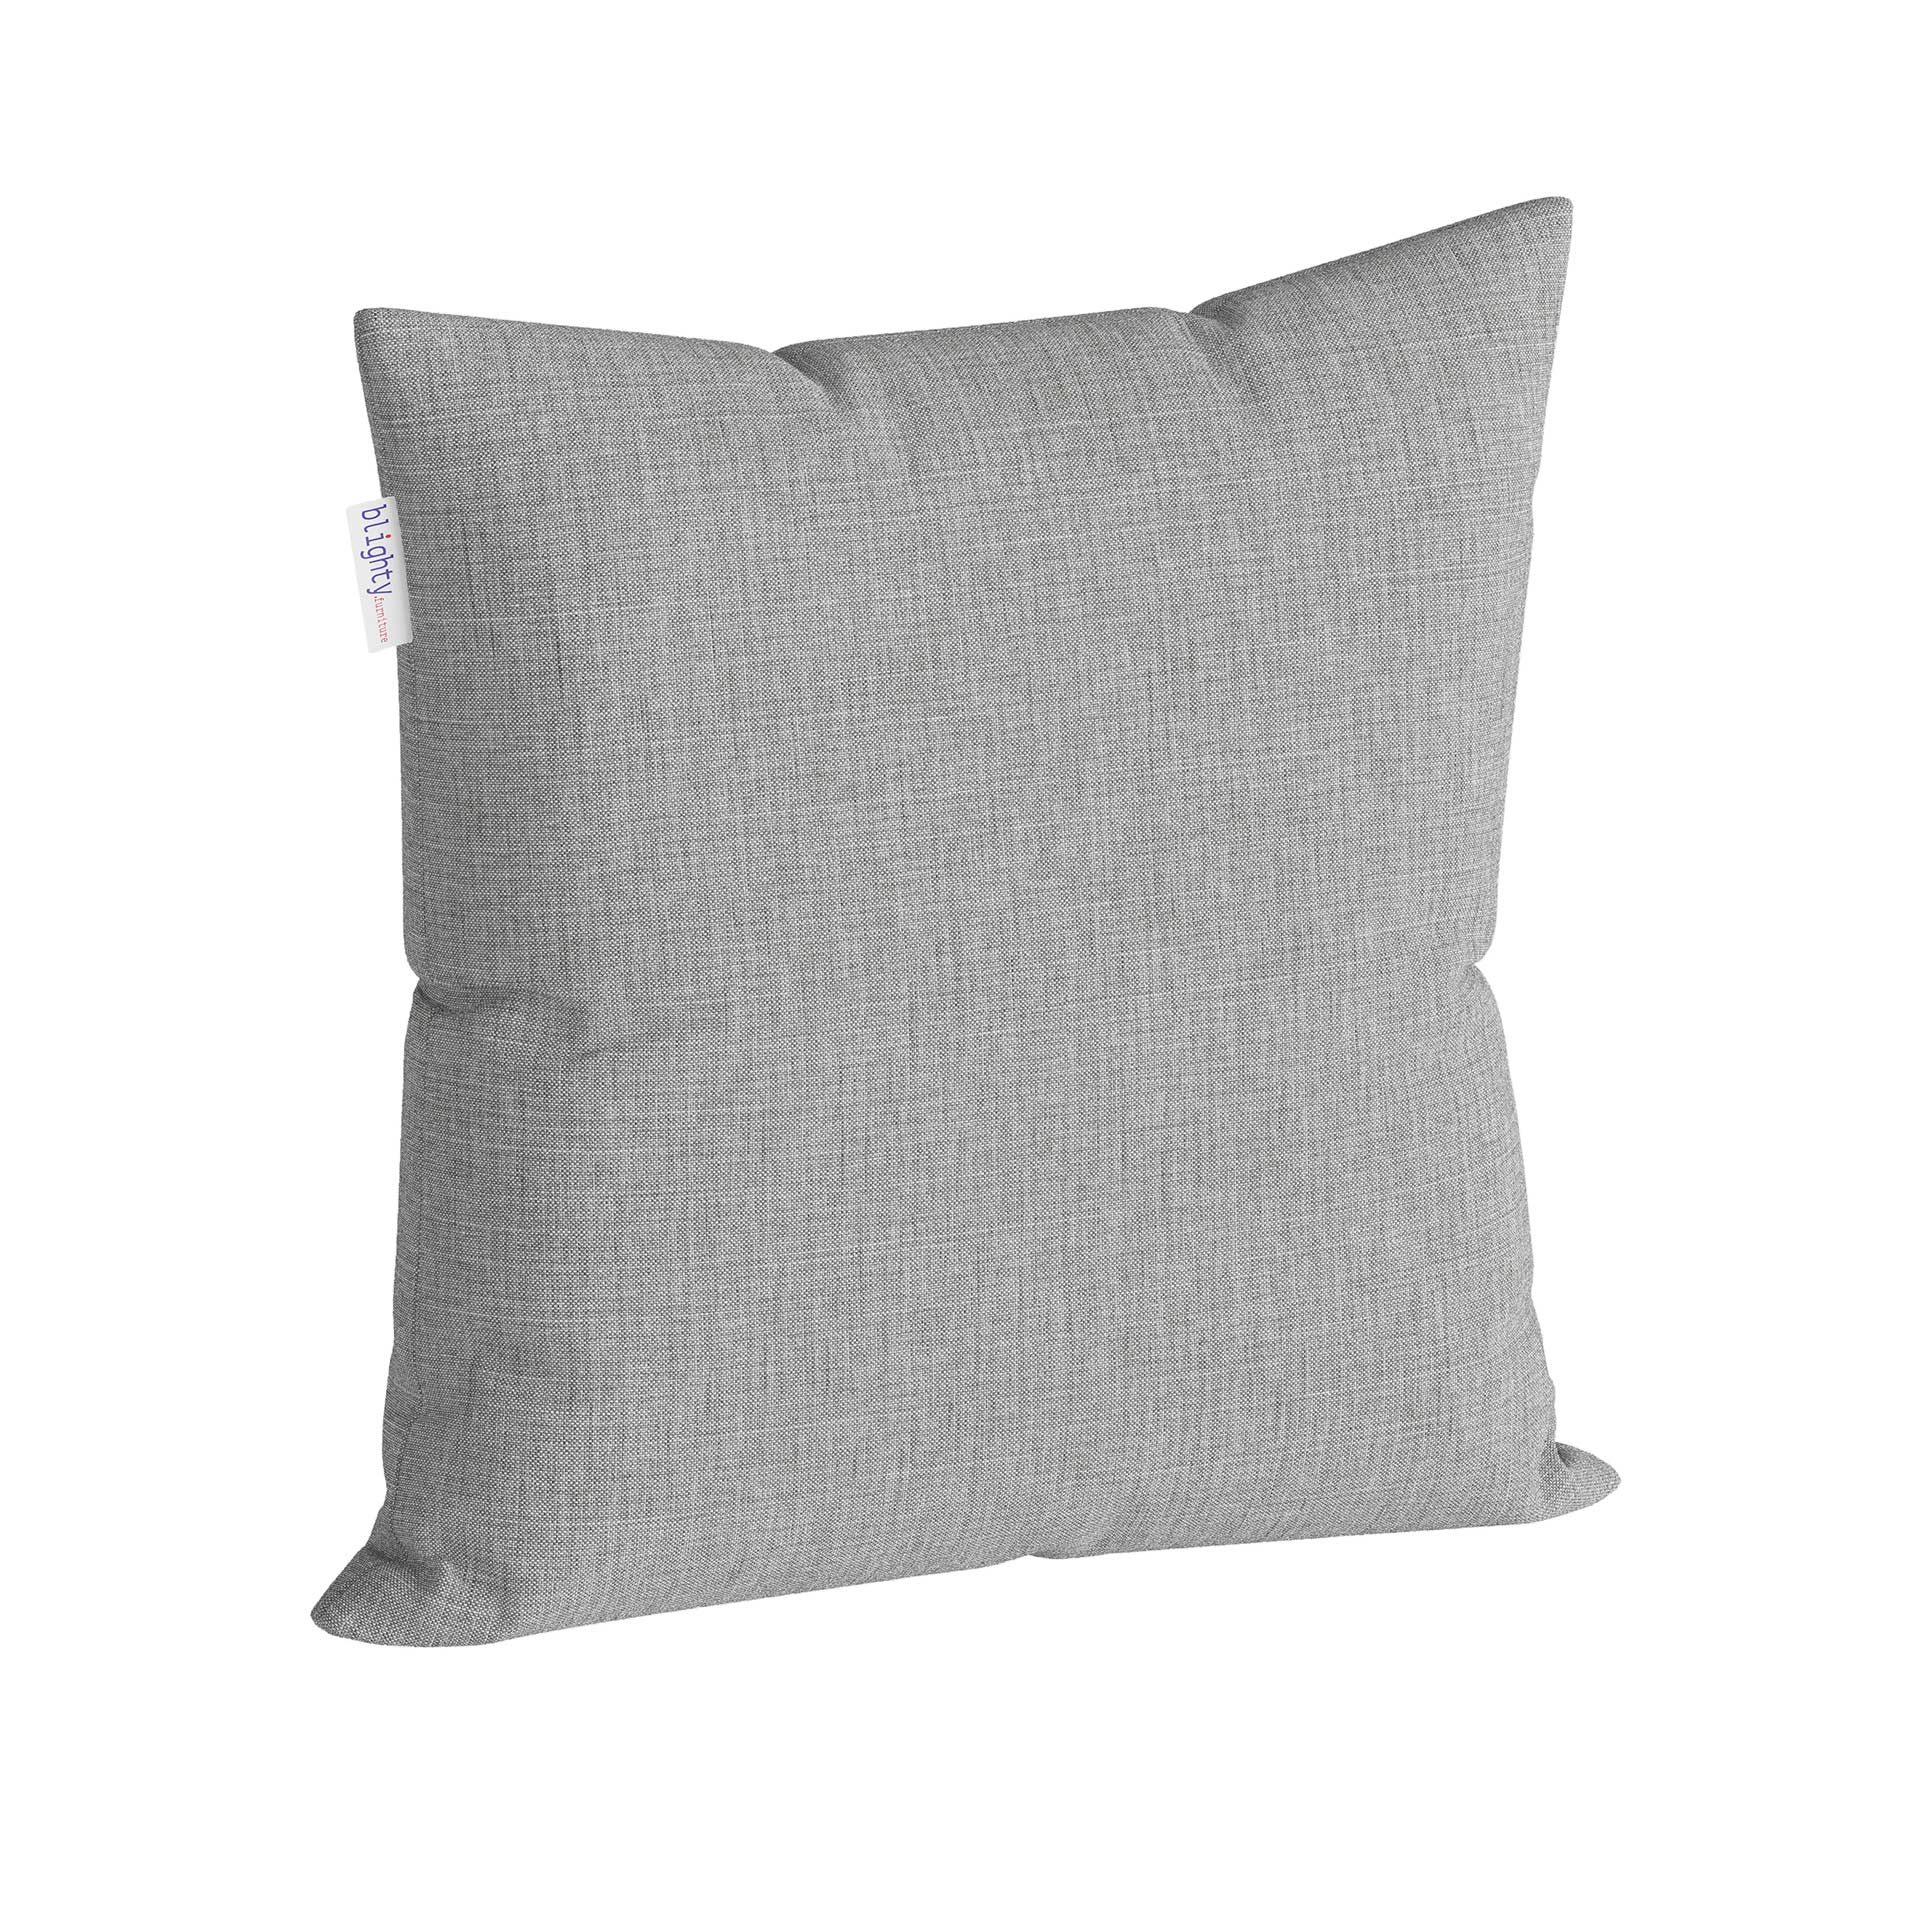 Scatter Square Pillow Corner View Light Grey